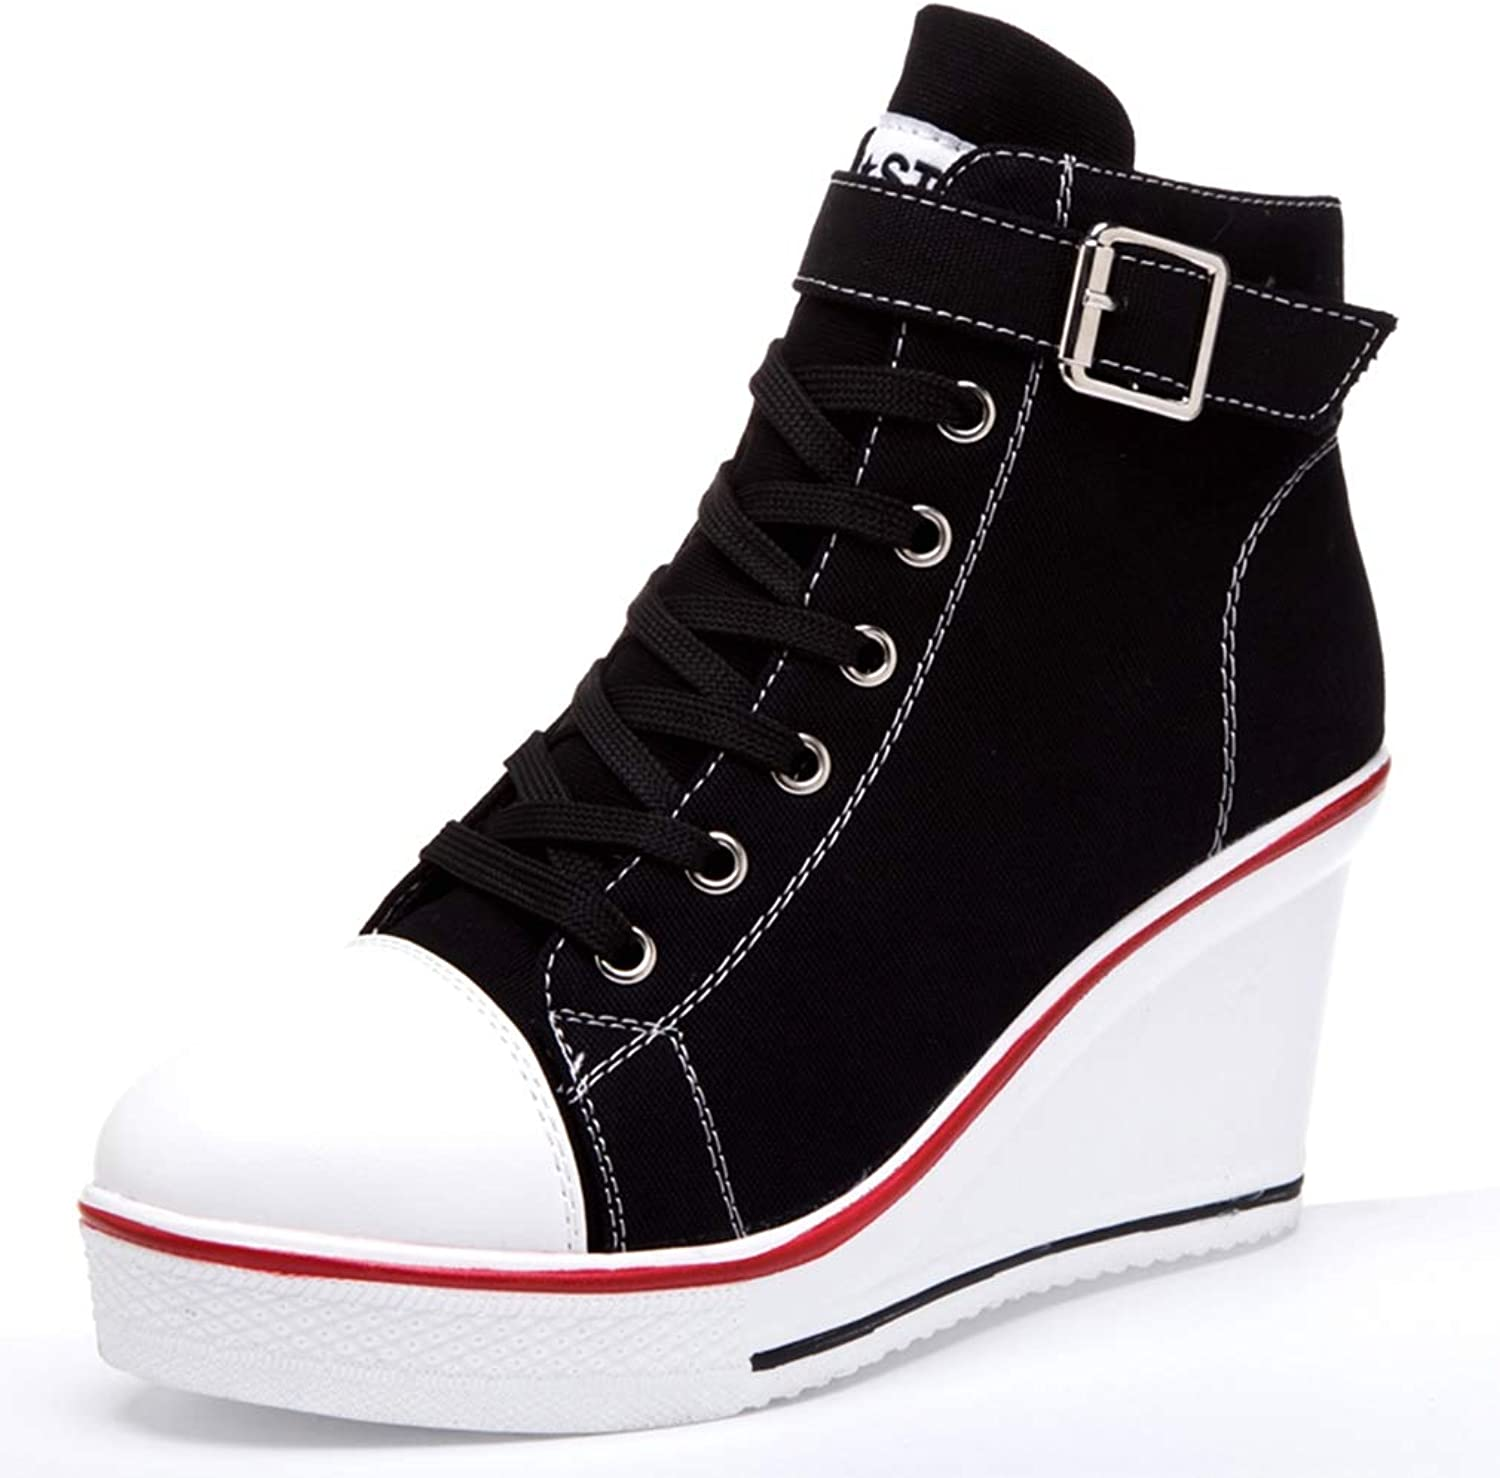 Btrada Women High Top Wedges Canvas Sneakers Female Lace Up Ankle Ankle Canvas shoes